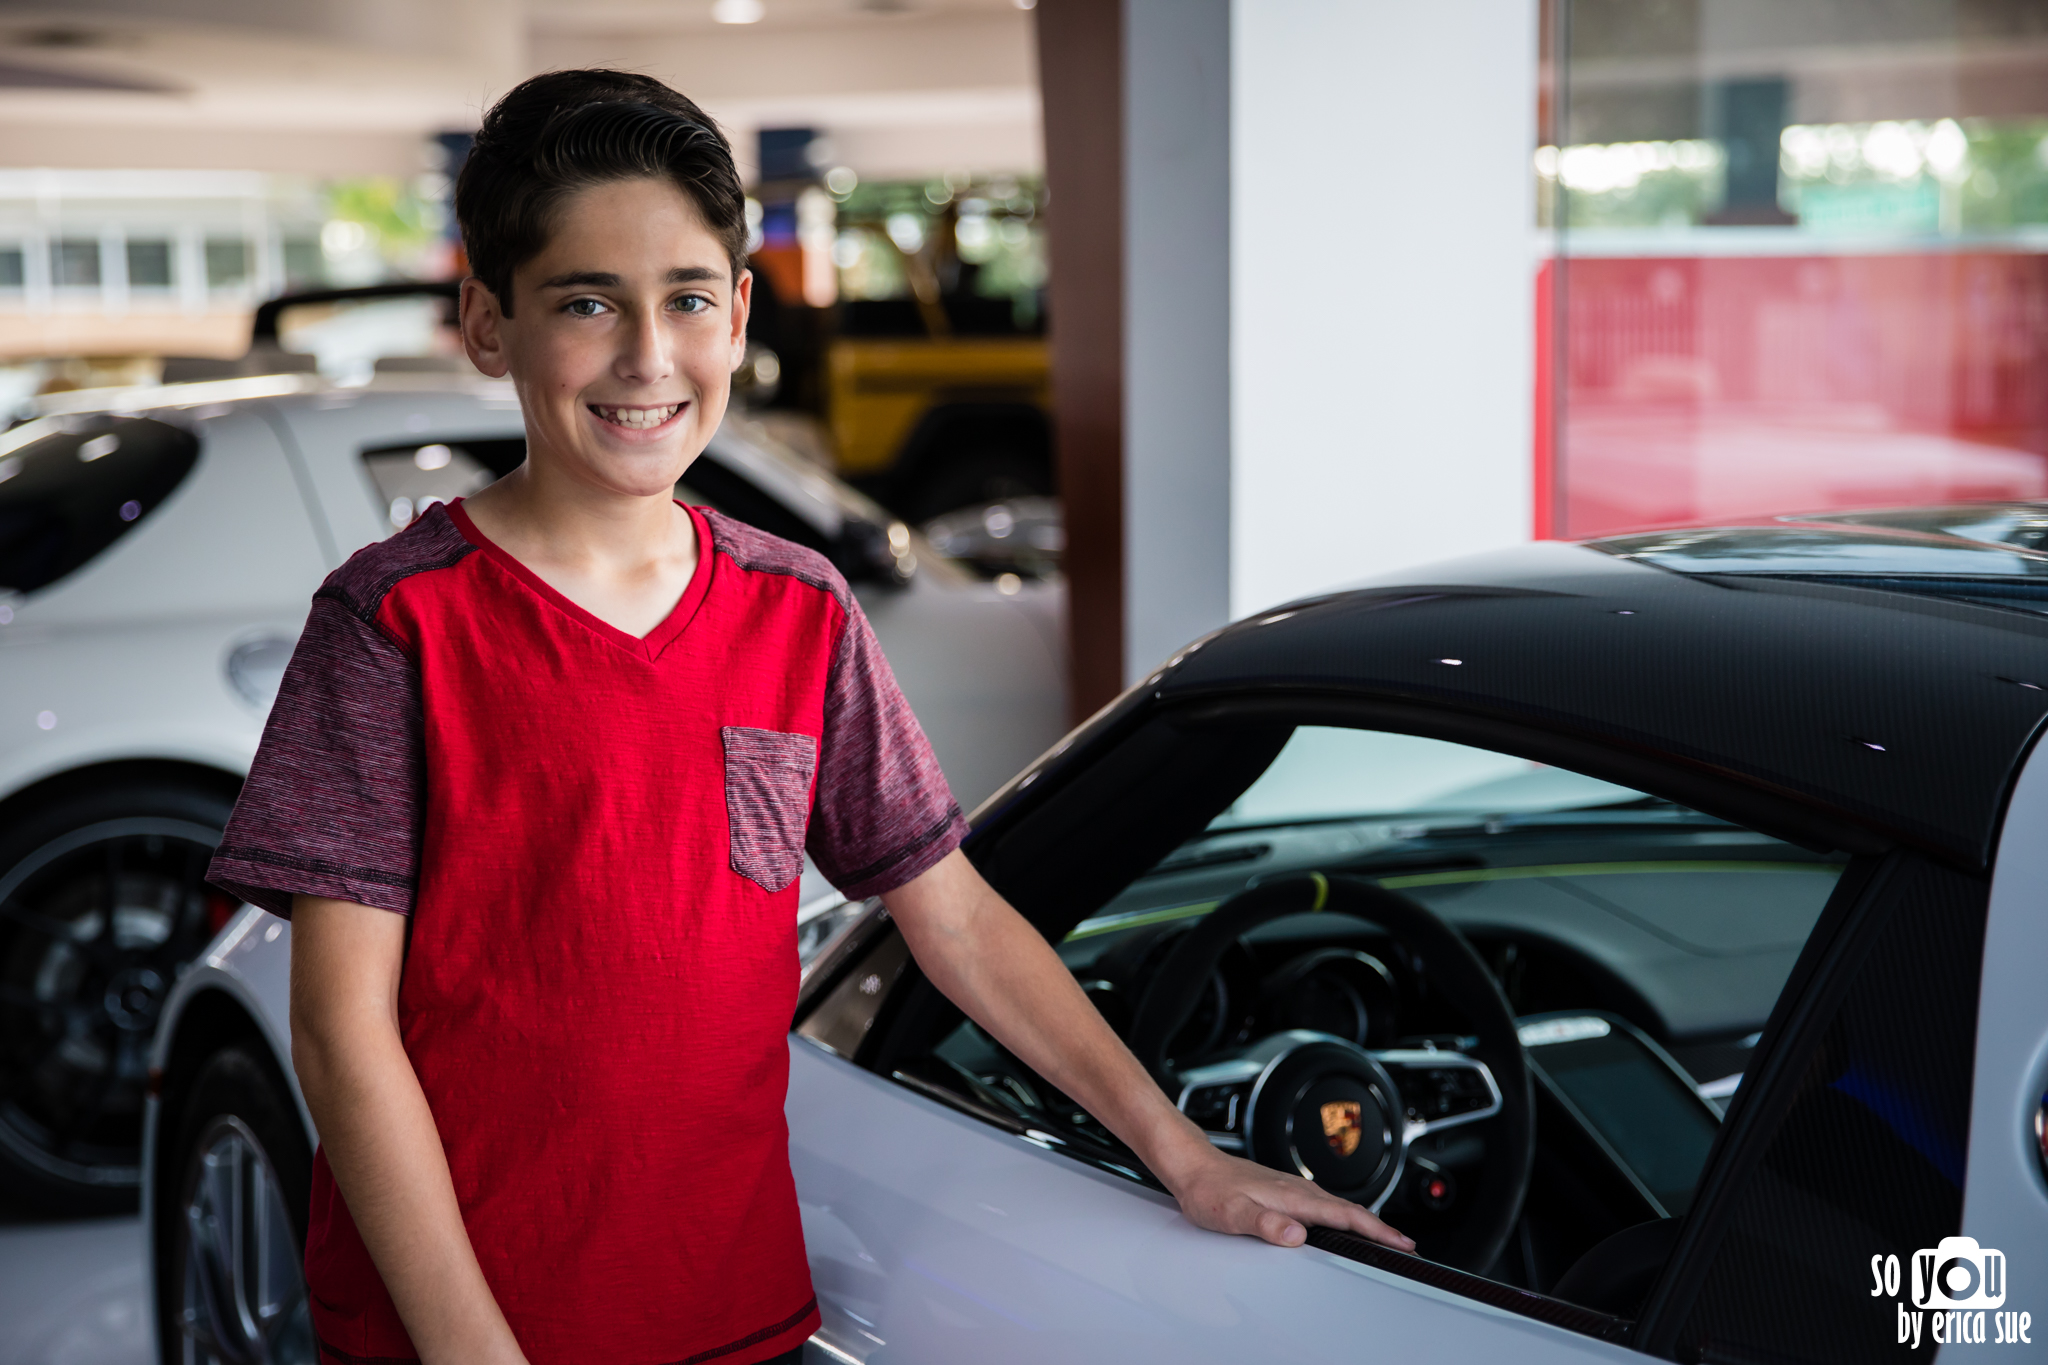 so-you-by-erica-sue-mitzvah-photographer-collection-luxury-car-ft-lauderdale-4866.jpg